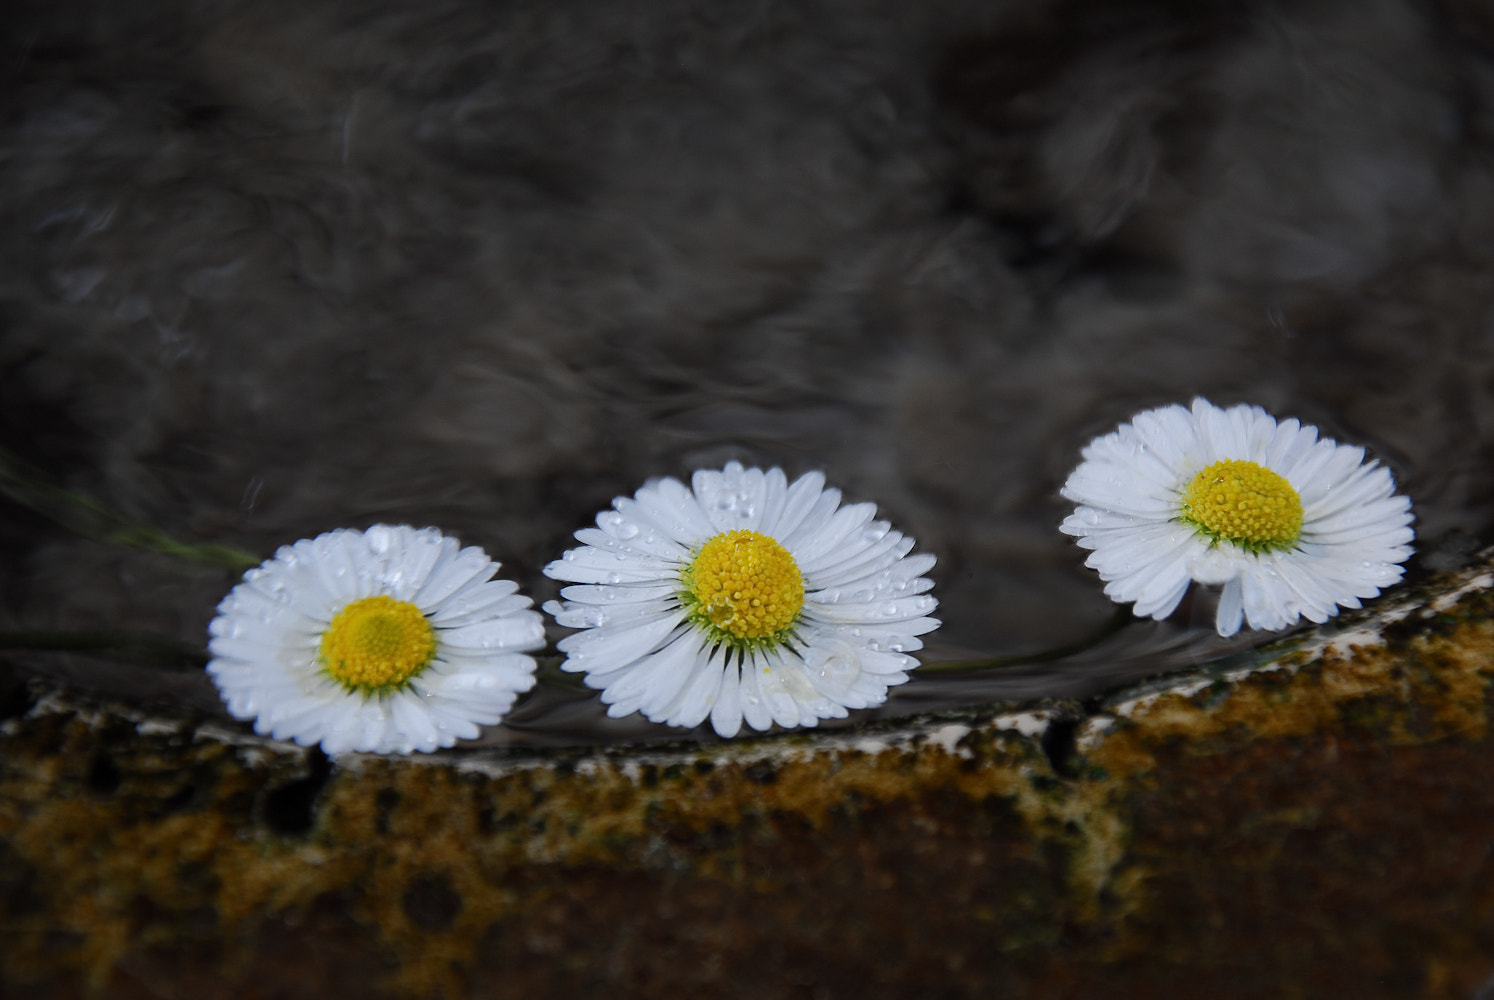 Photograph Daisies in the fountain by Dario Ricardo on 500px